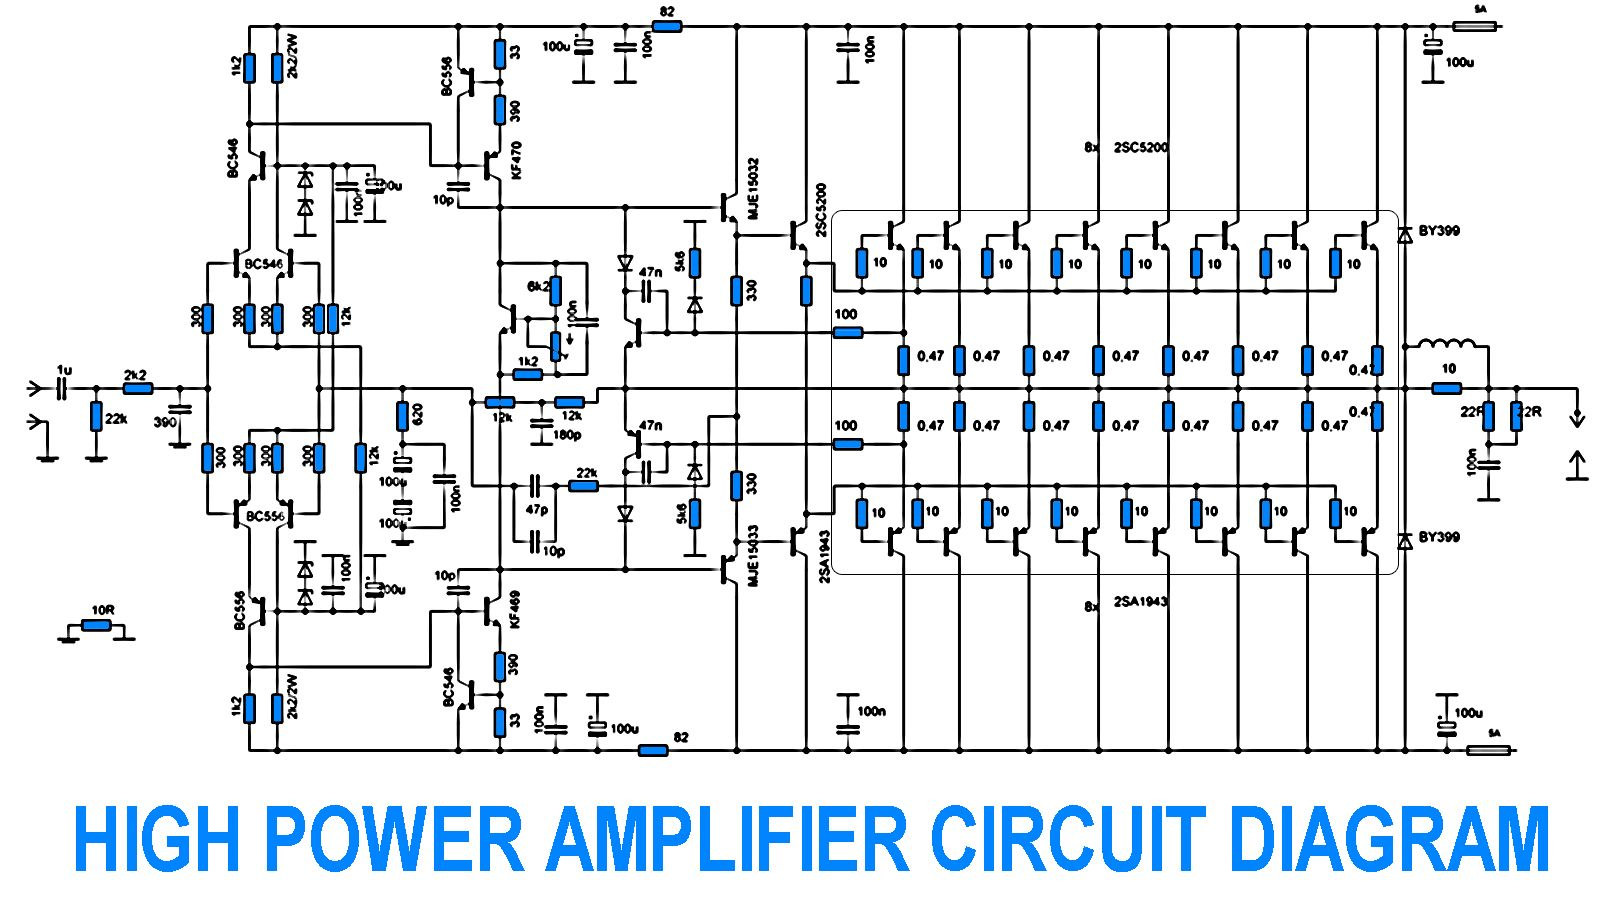 hight resolution of 2sc5200 2sa1943 500watt amplifier circuit diagram